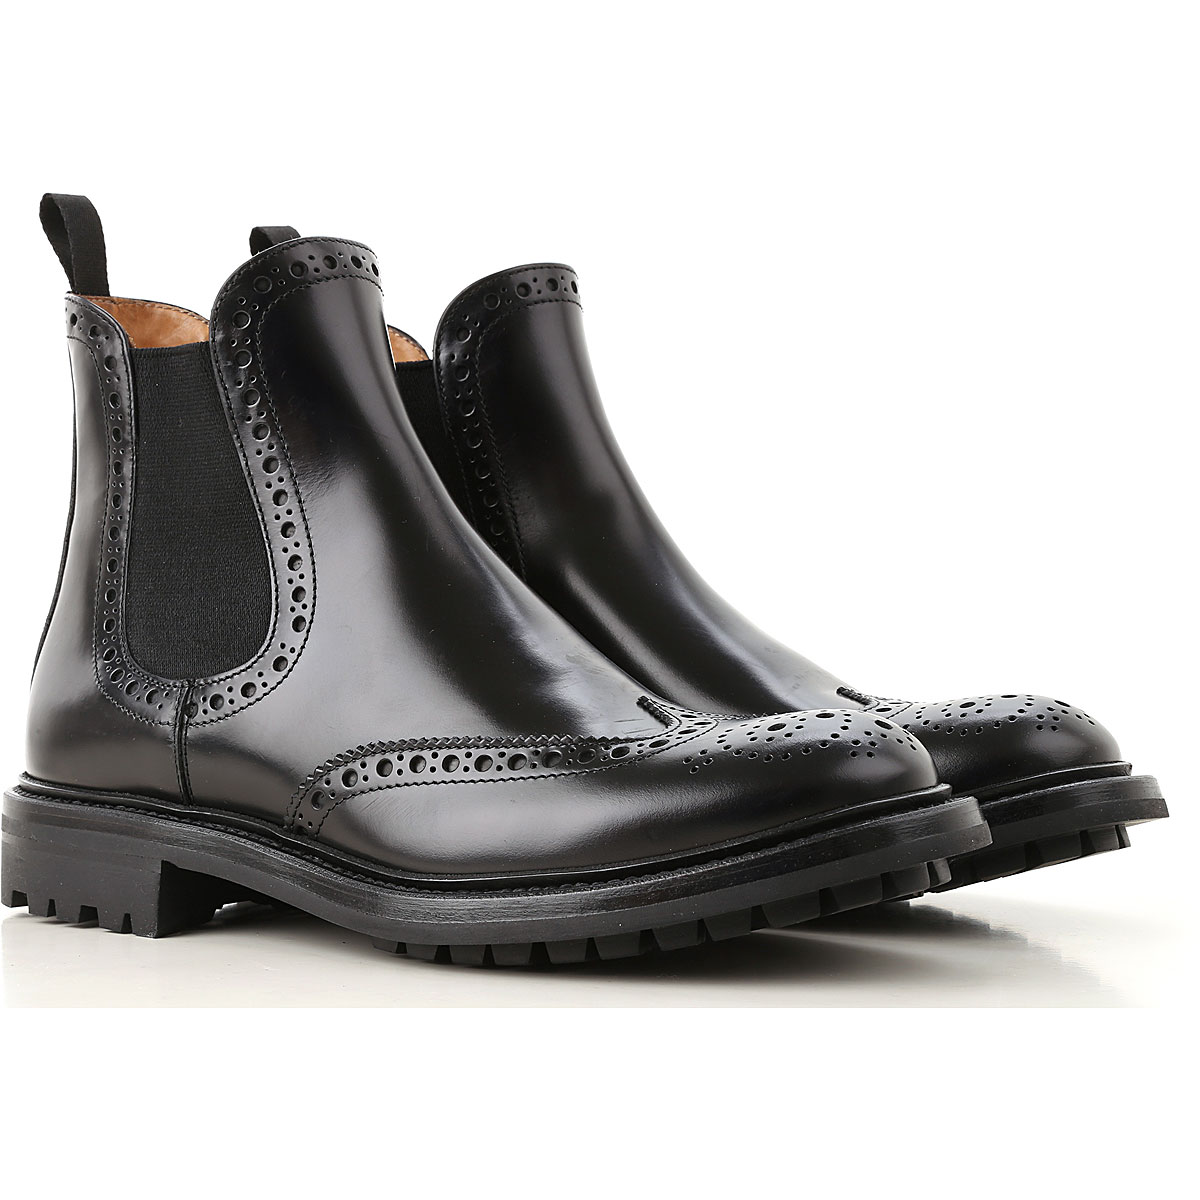 Image of Church's Chelsea Boots for Women, Black, Patent Leather, 2017, 10 5 6 6.5 7 8 8.5